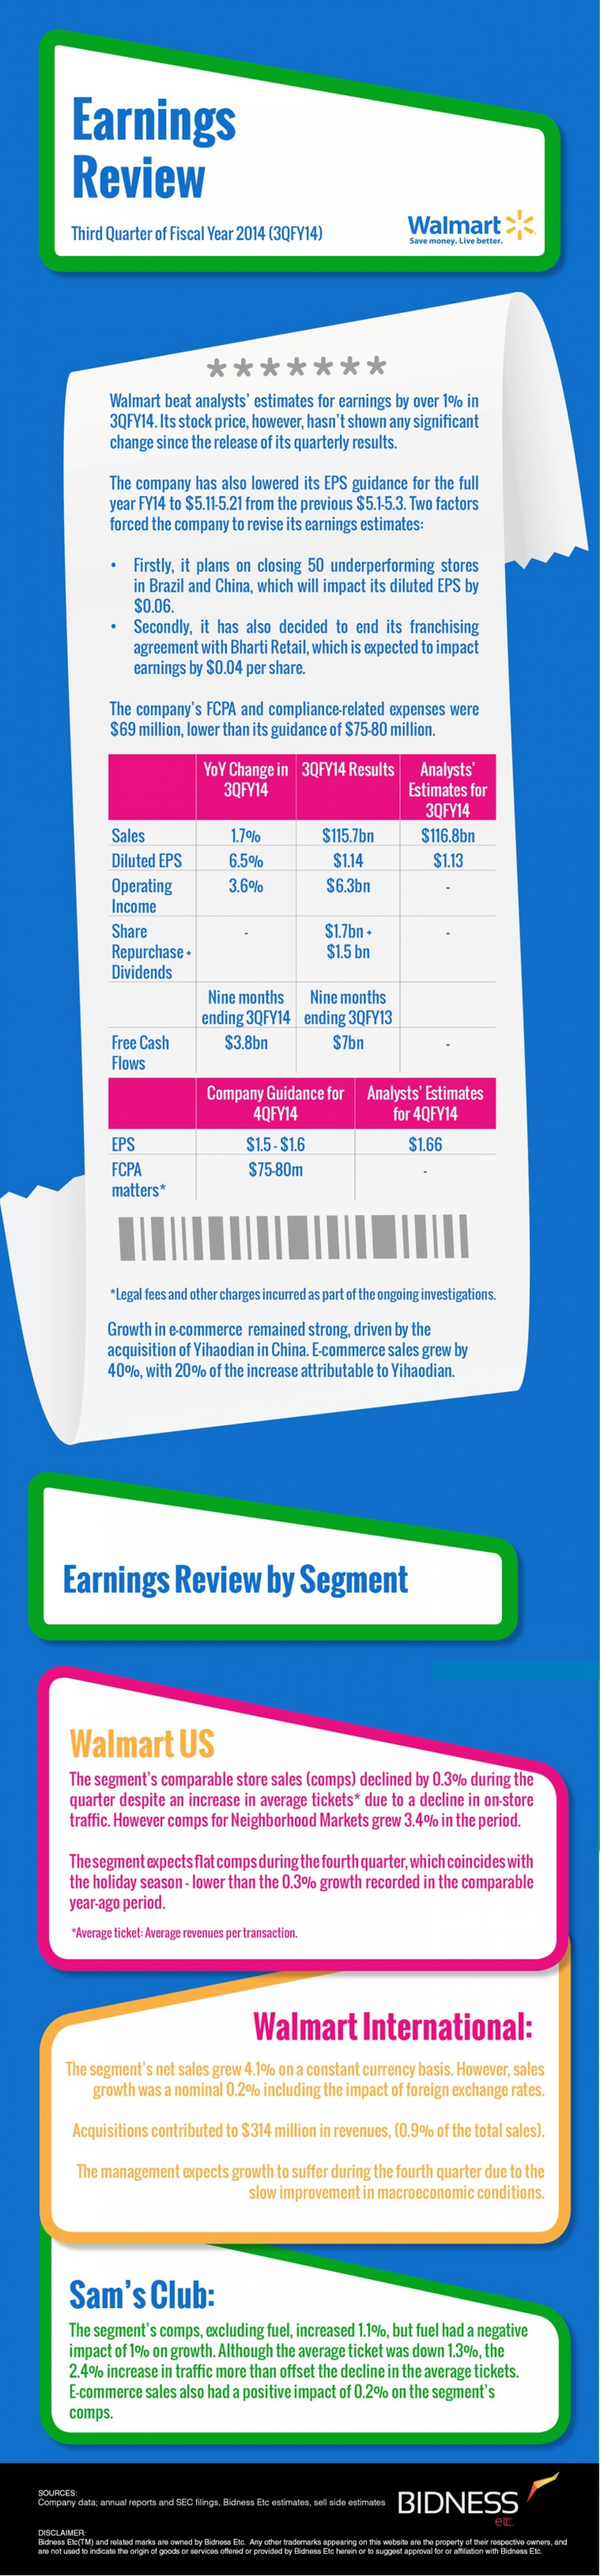 Walmart (WMT) Earnings Review Infographic